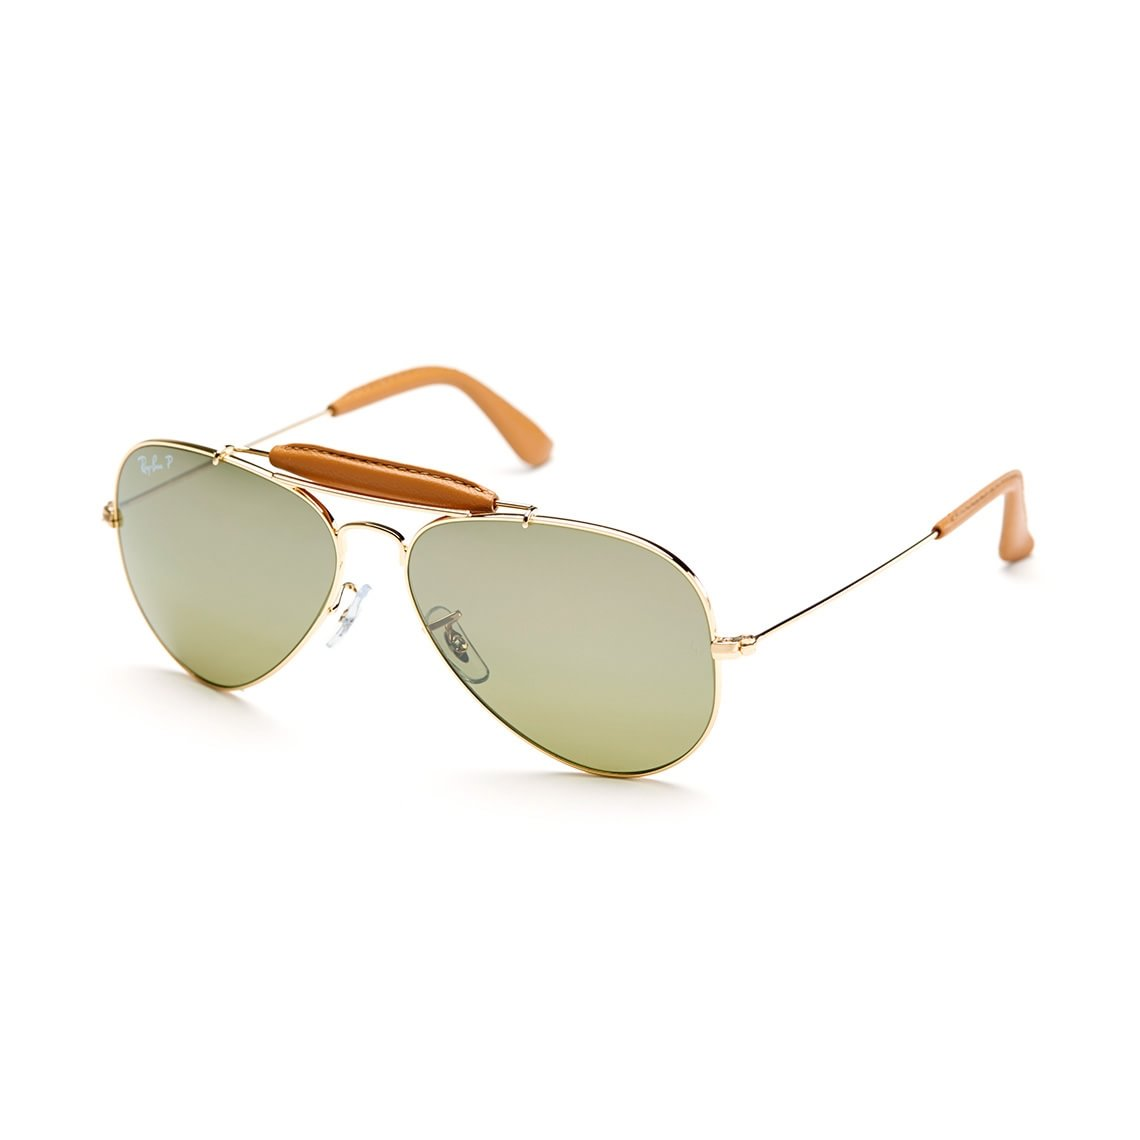 Ray-Ban Aviator Craft RB3422Q 001/M9 58